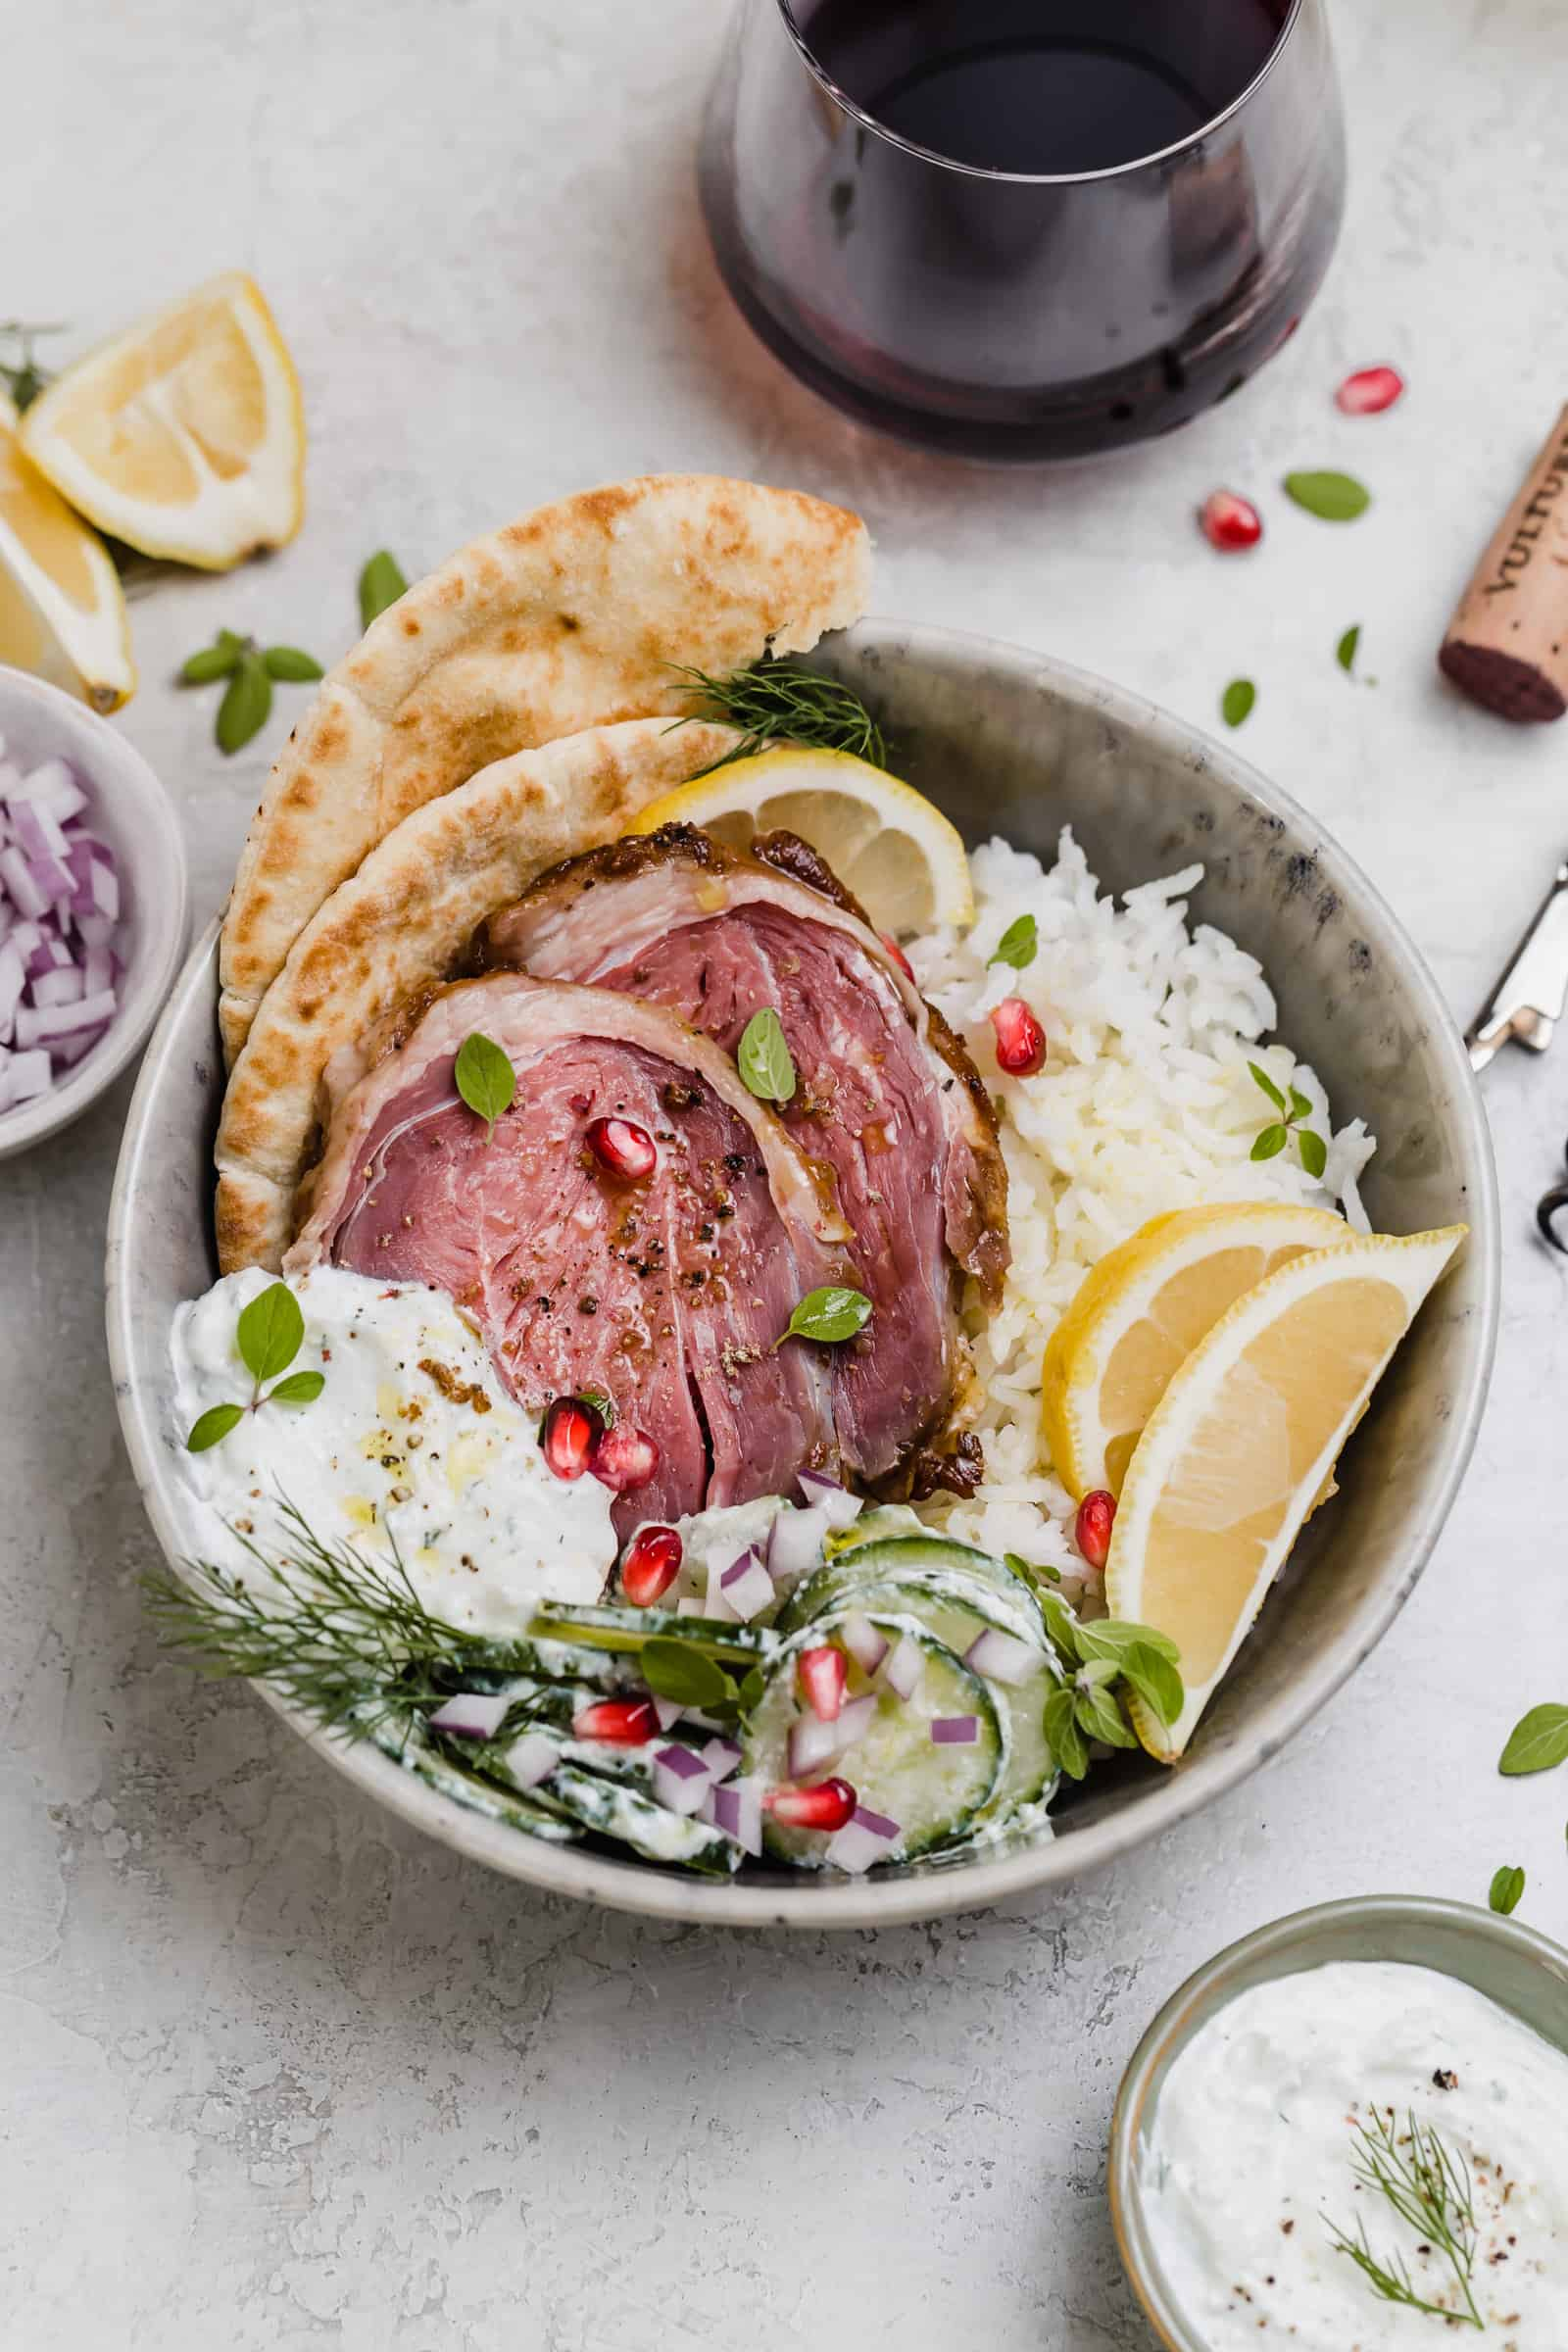 sous vide leg of lamb over rice with pita and cucumber salad